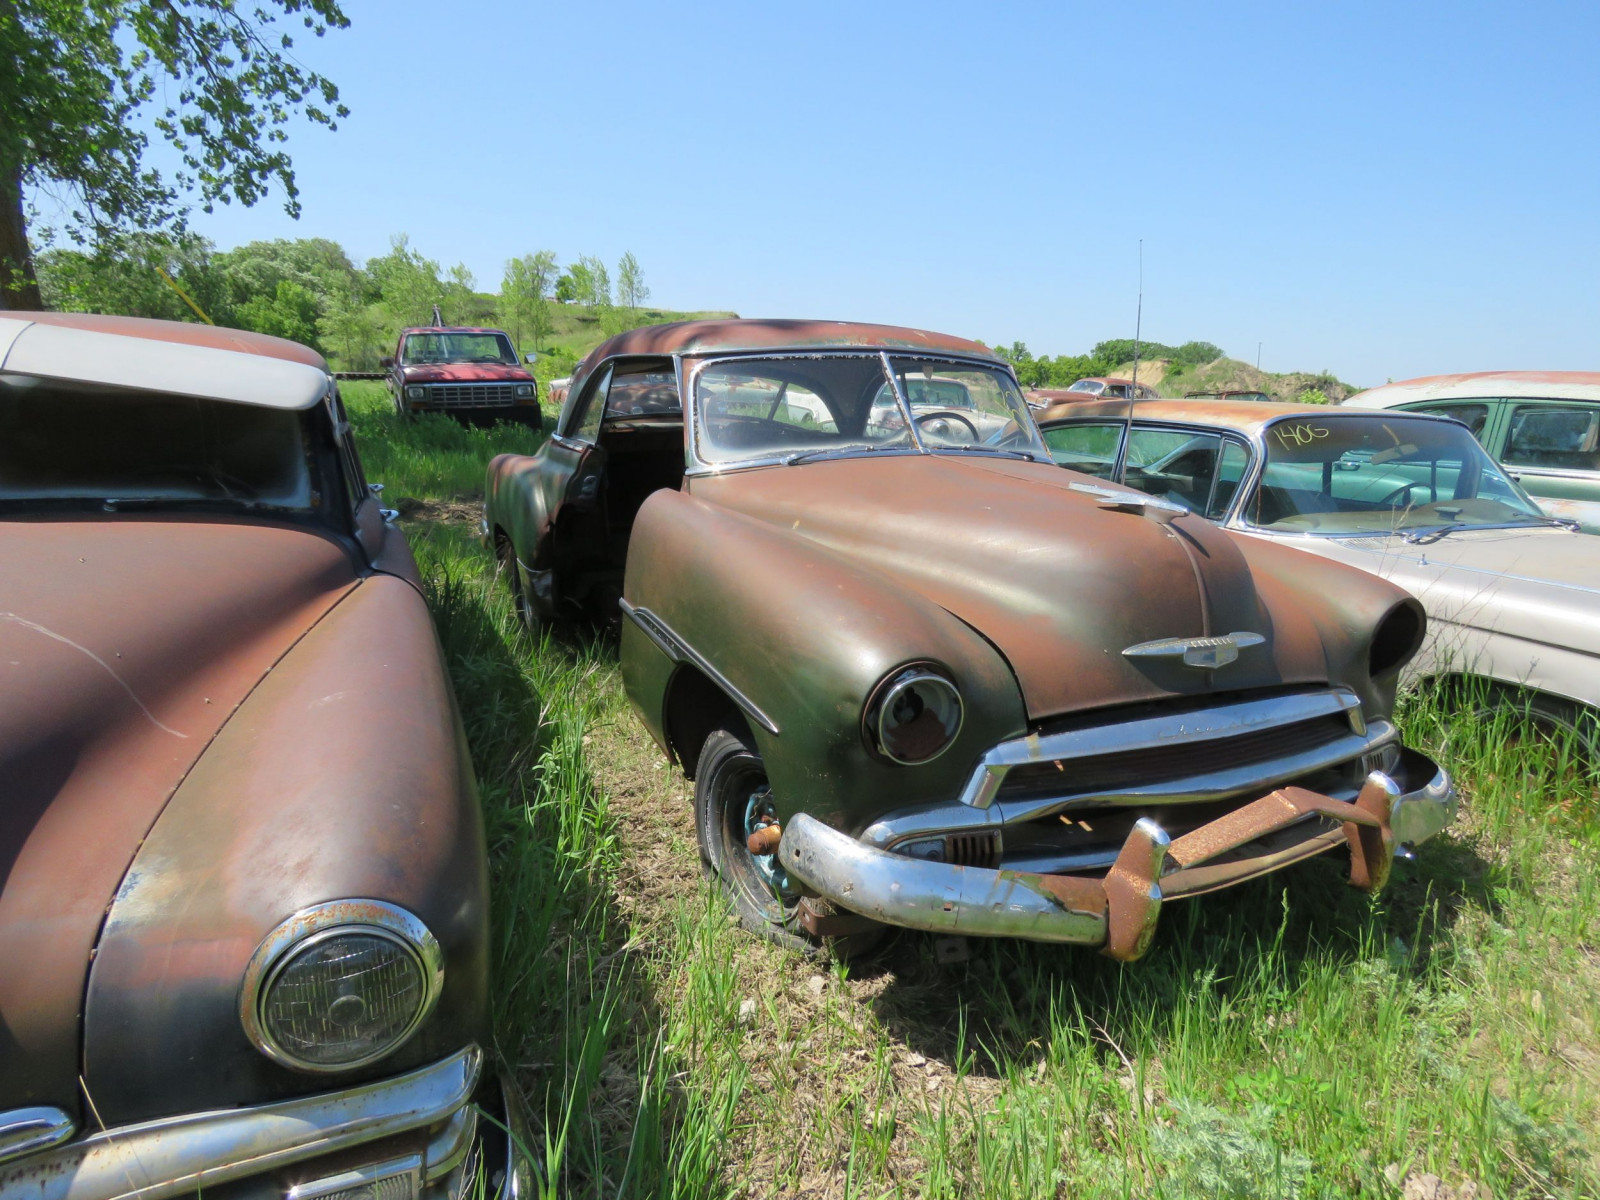 1949/50 Chevrolet Deluxe 2dr HT for parts - Image 2